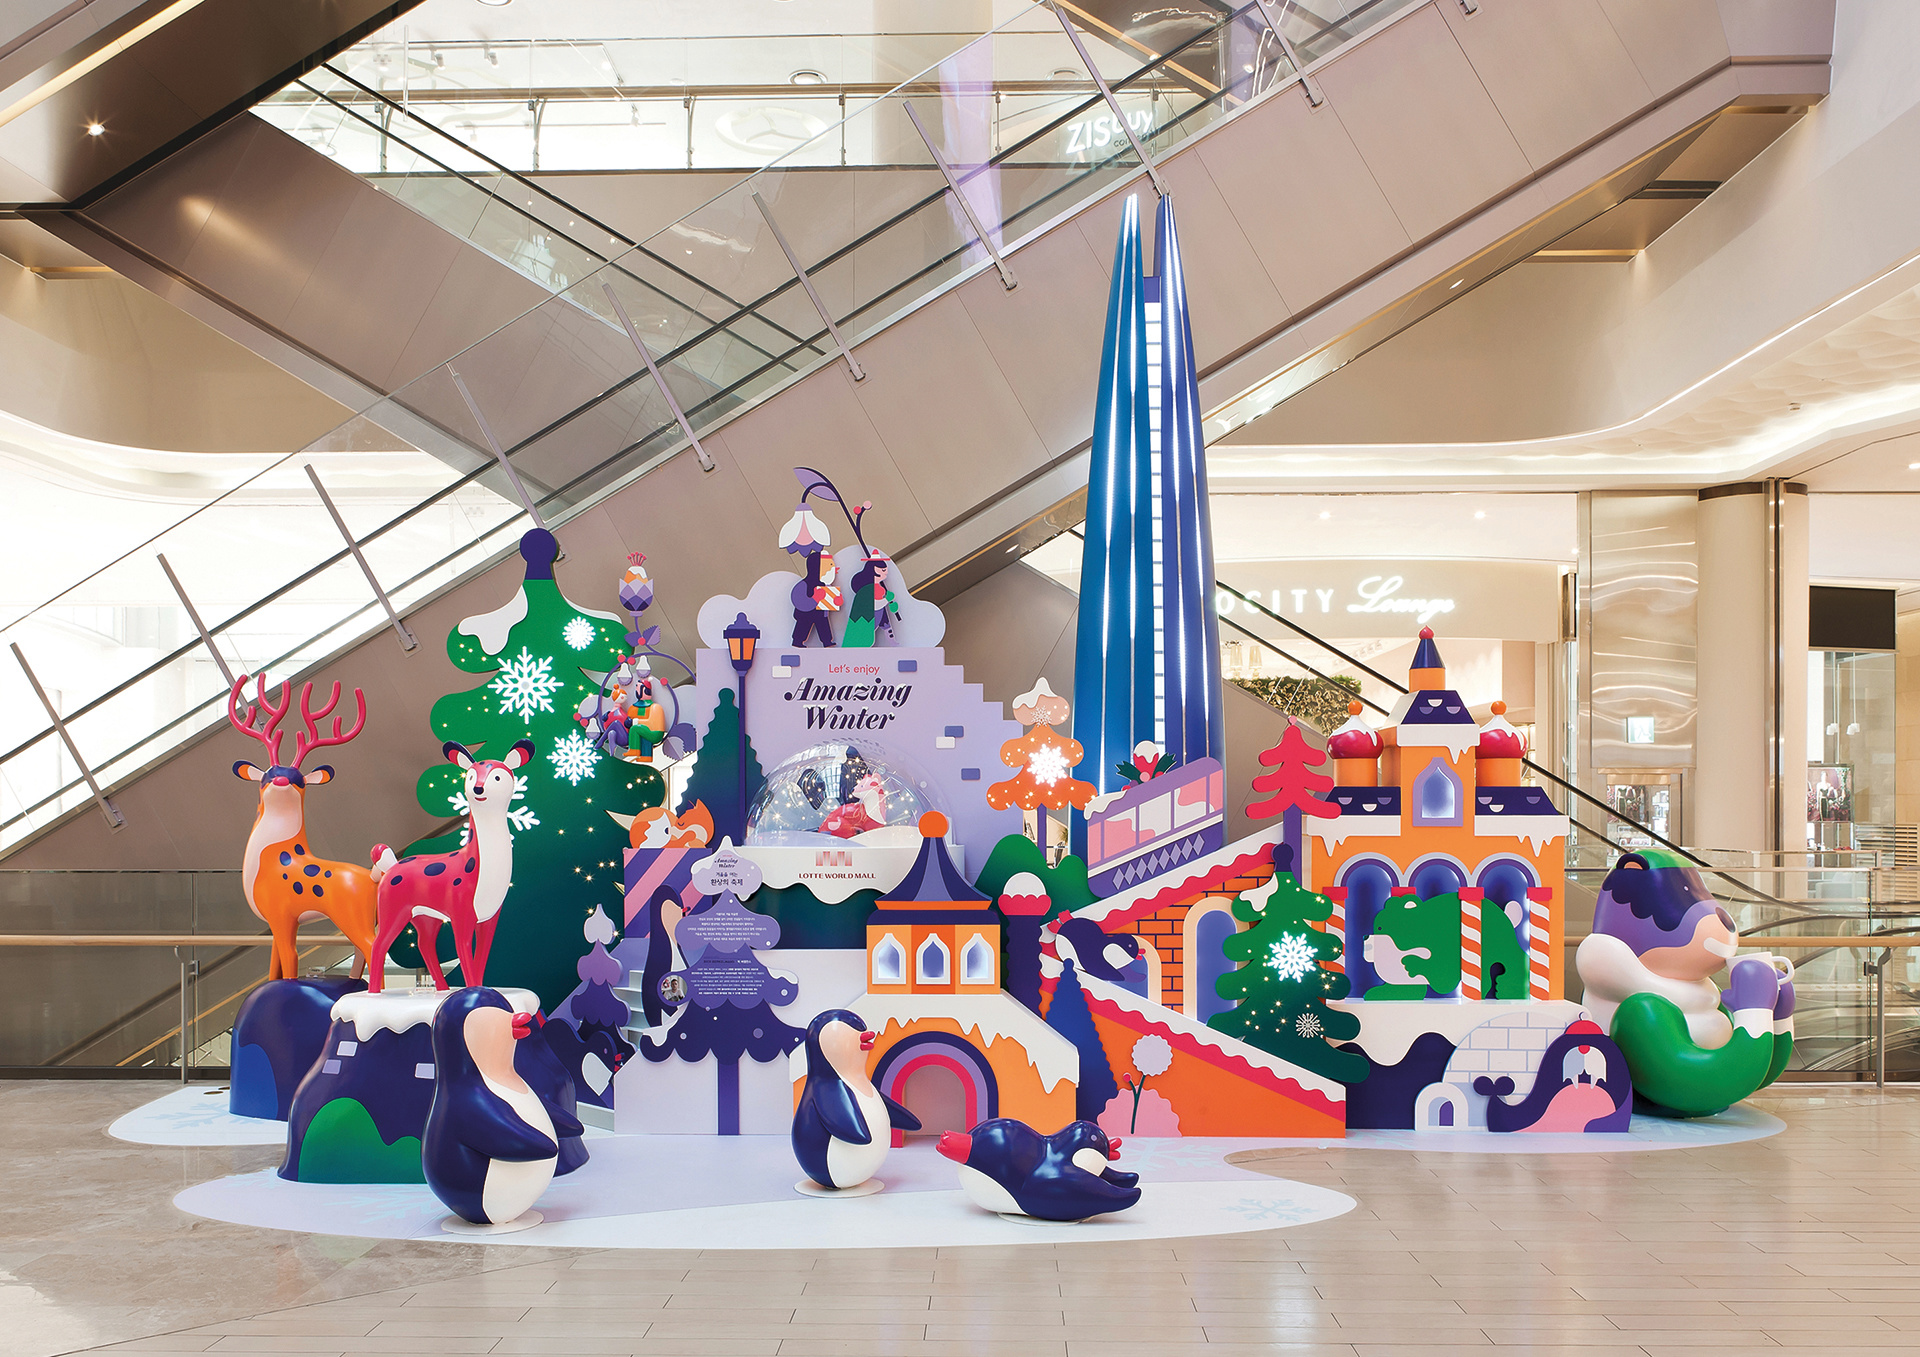 Hedof's project at Lotte World Mall, in Seoul, Korea